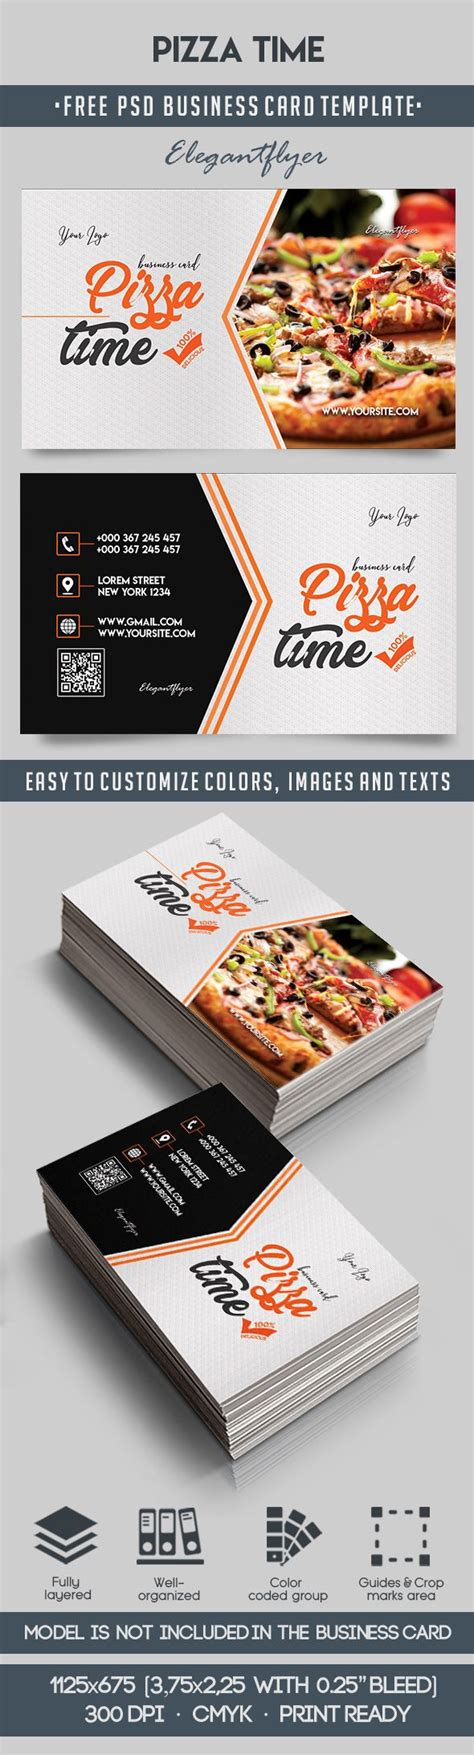 pizza template for a card pizza time free business card templates psd by